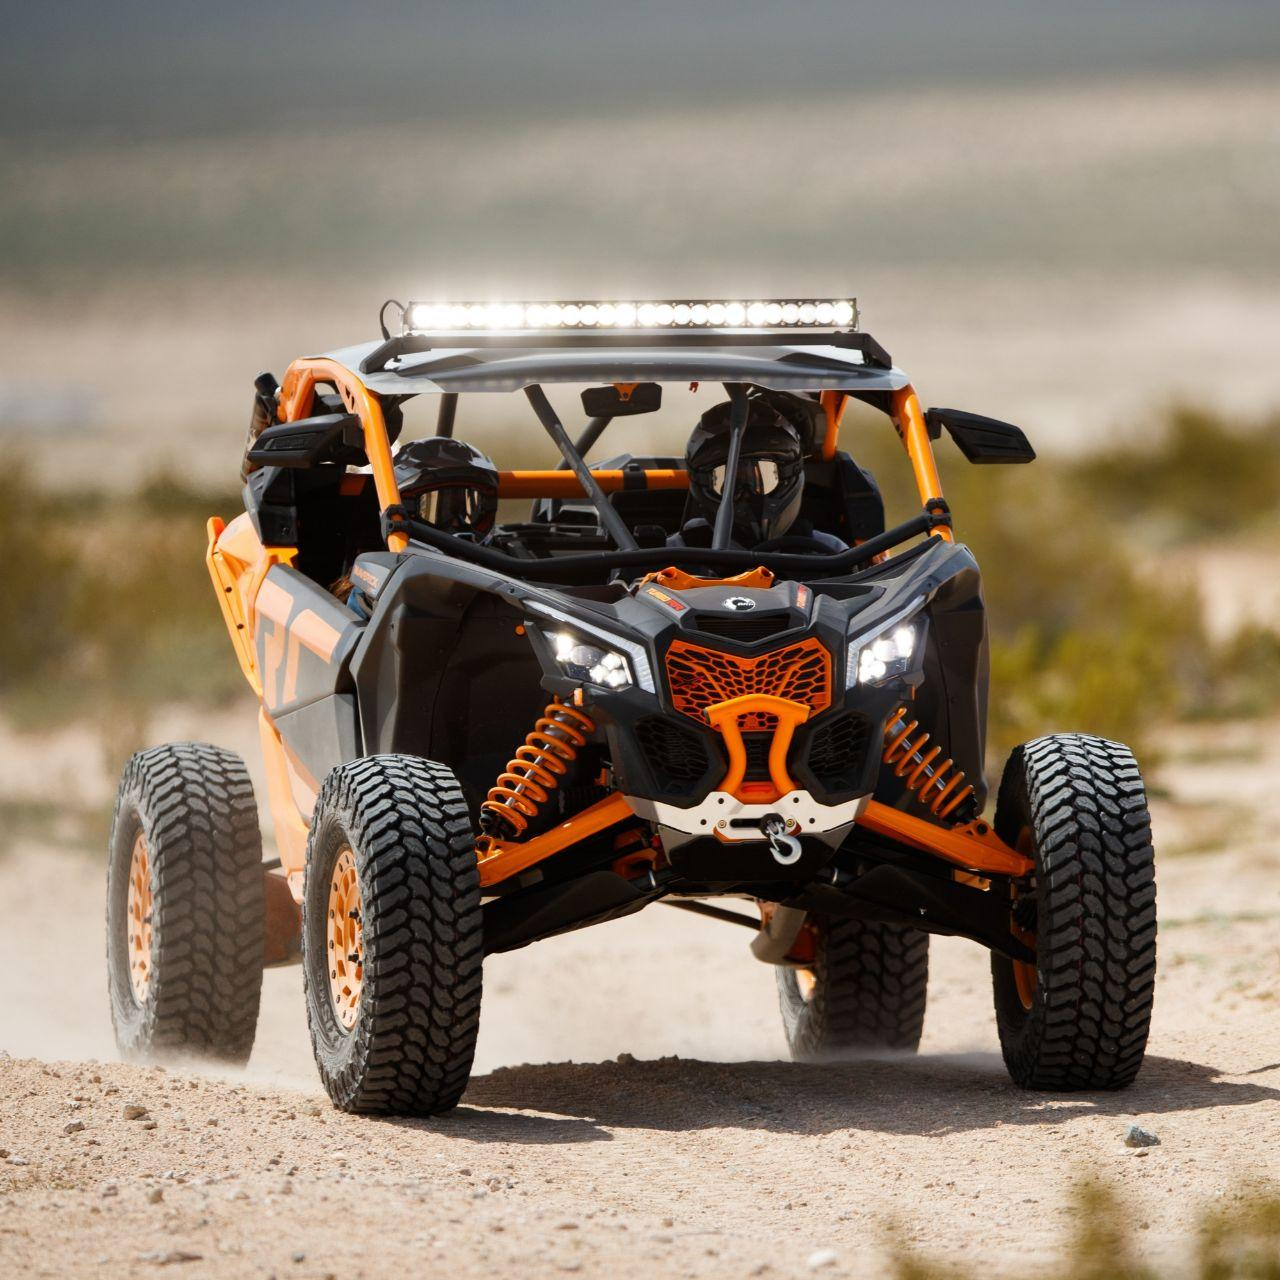 Acquista UTV OFF-ROAD con Bitcoin.